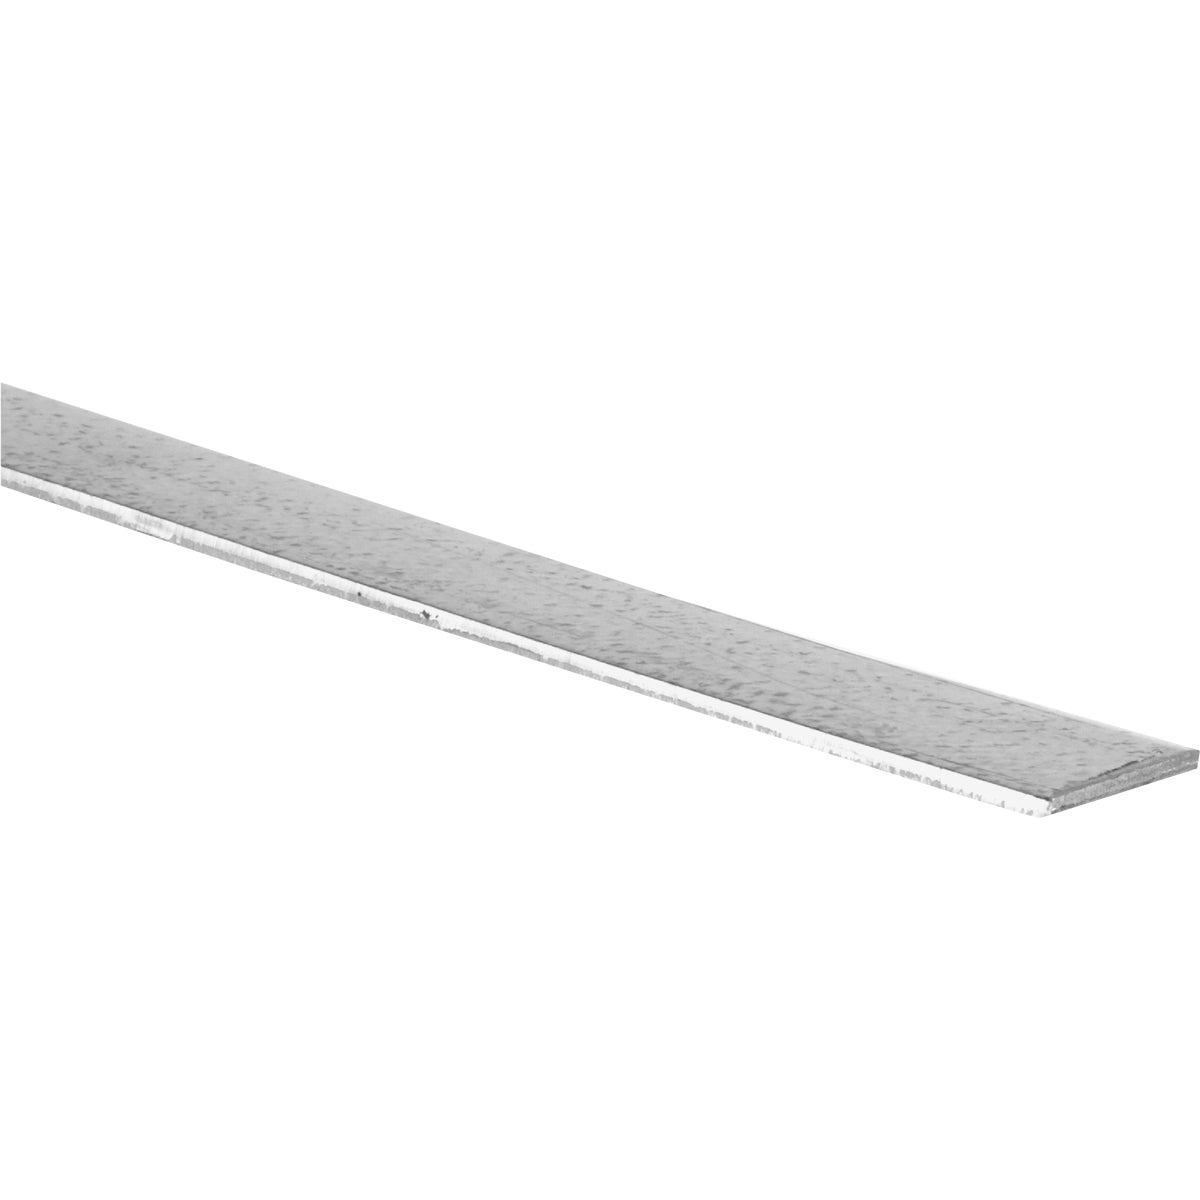 1X72 GLV SOLID FLAT - N180034 by National Mfg Co